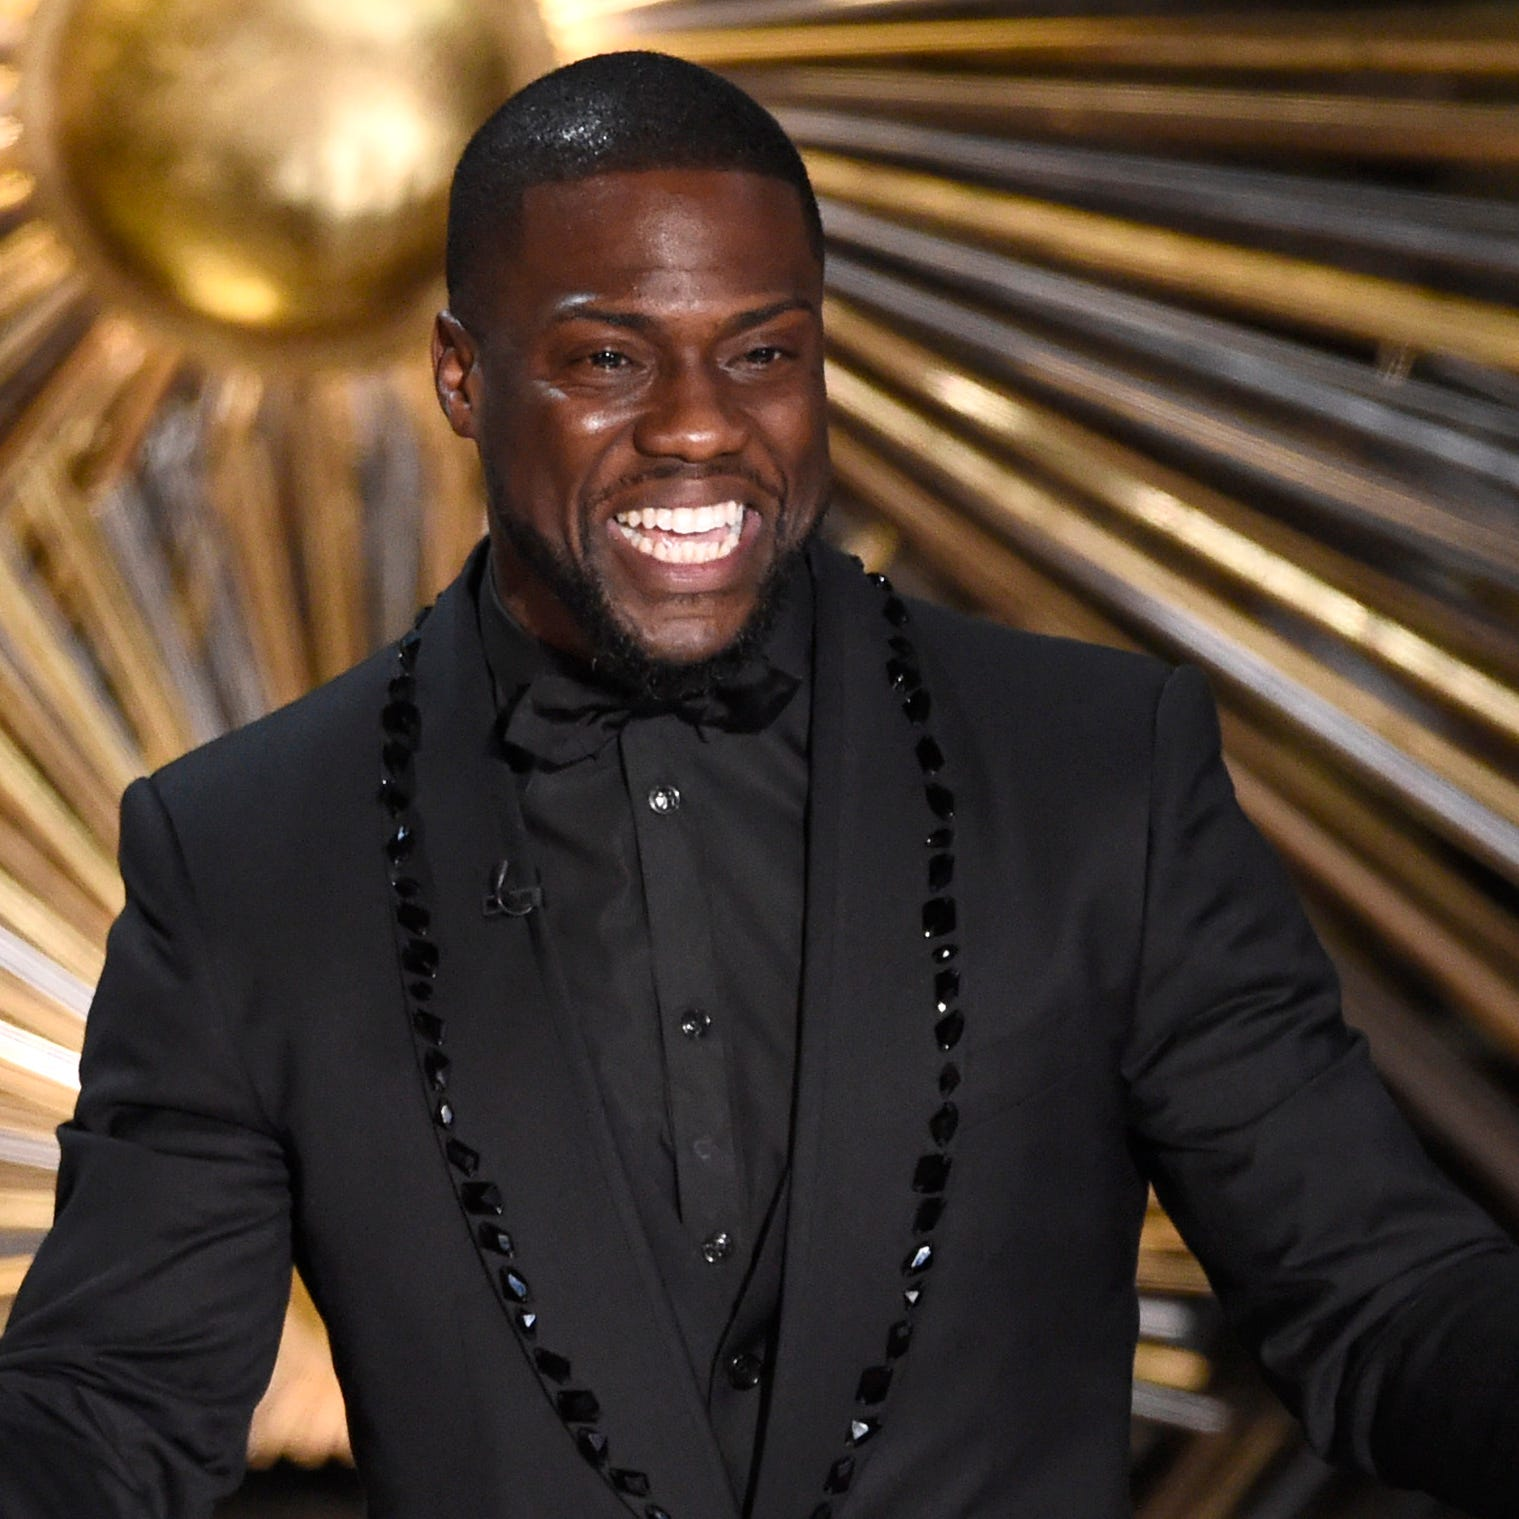 Kevin Hart steps down as Oscars host amid backlash from past homophobic tweets